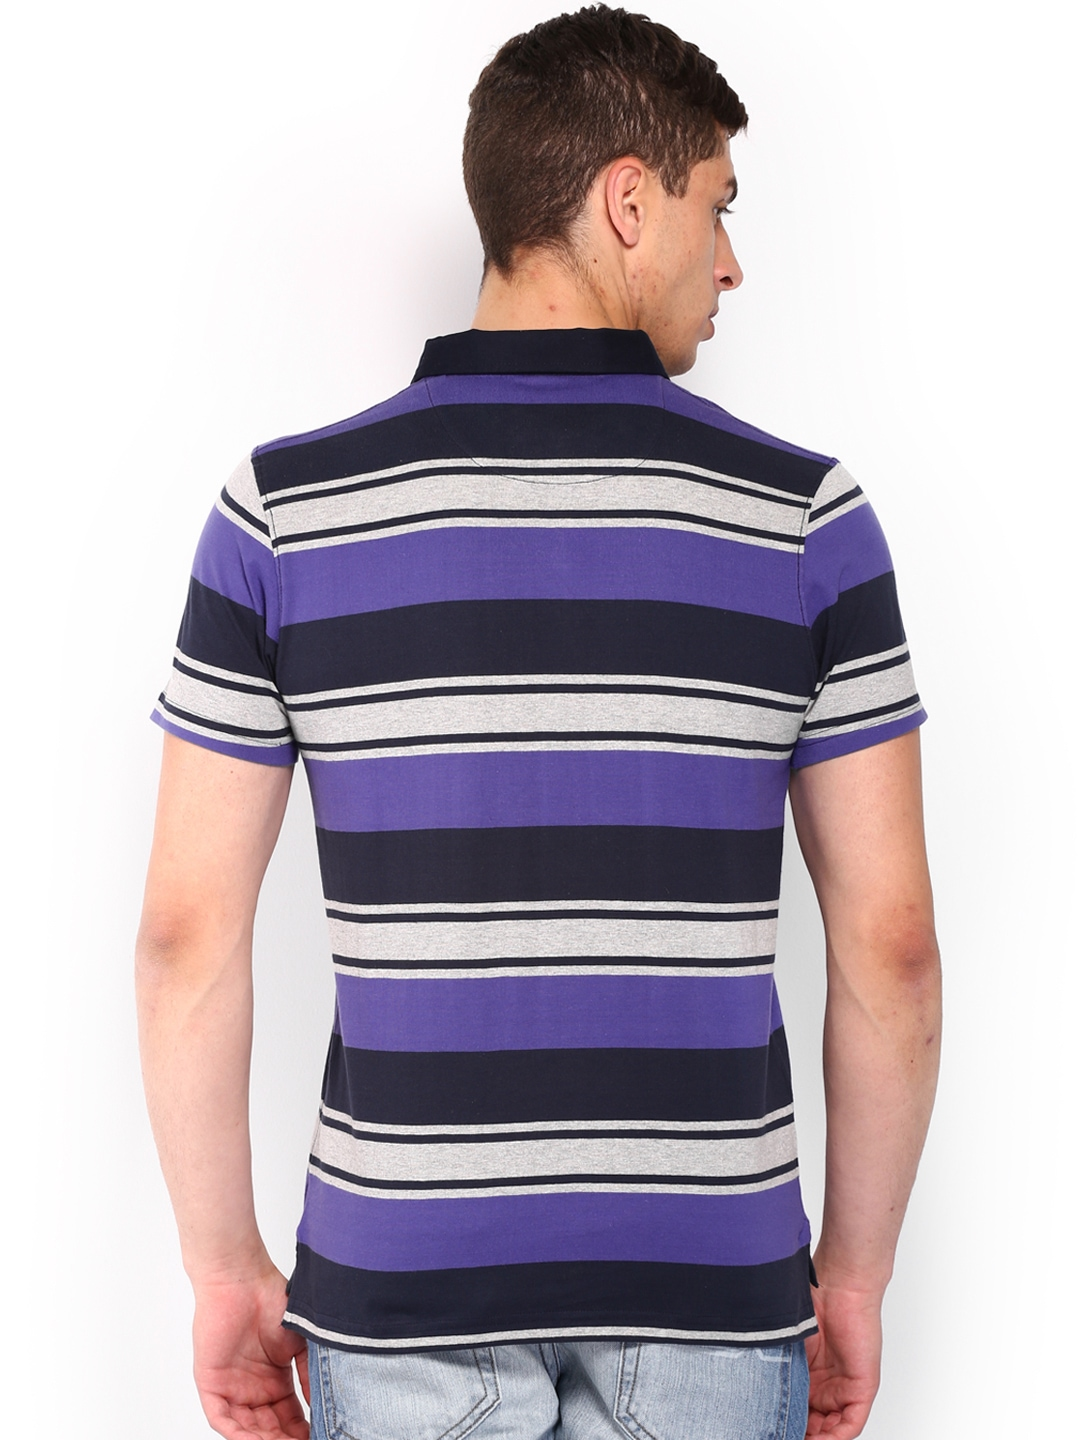 Myntra roadster men navy purple striped polo t shirt for Purple and black striped t shirt